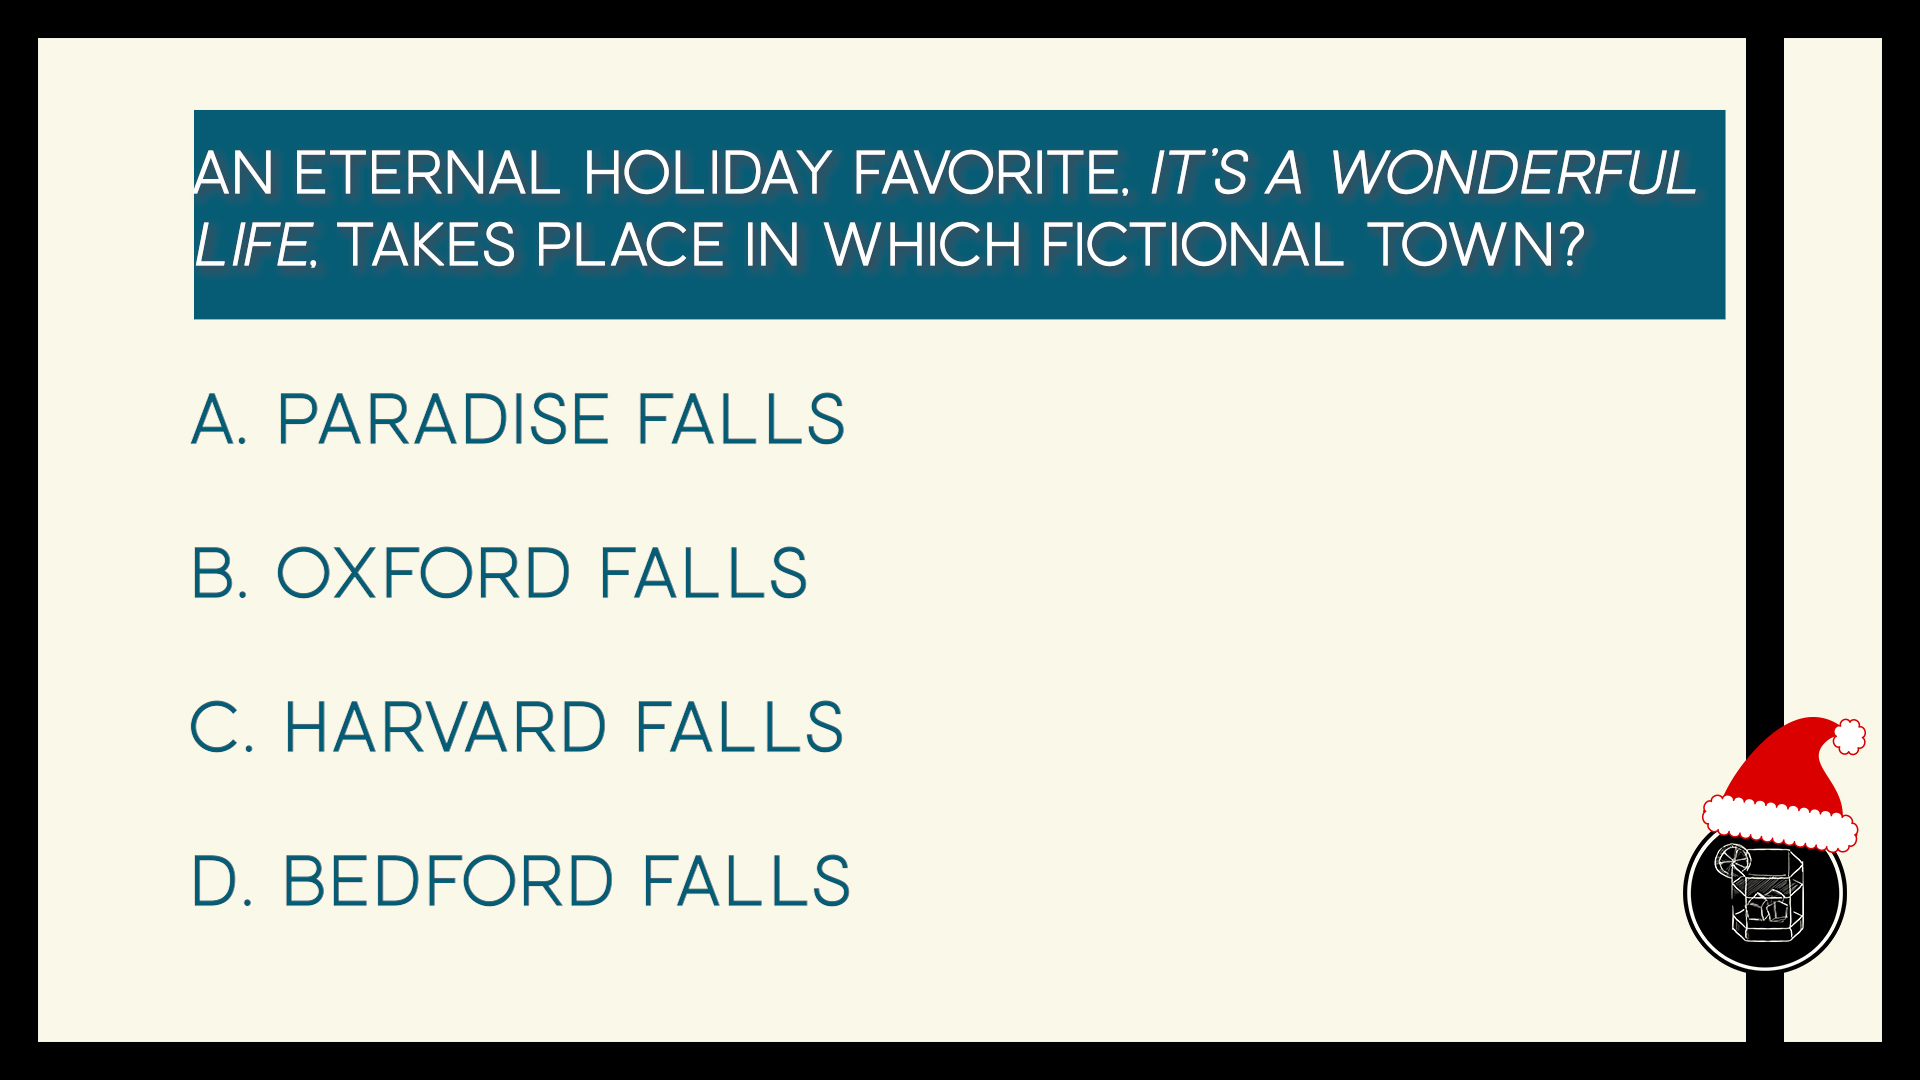 An eternal holiday favorite, It's A Wonderful Life, takes place in which fictional town?